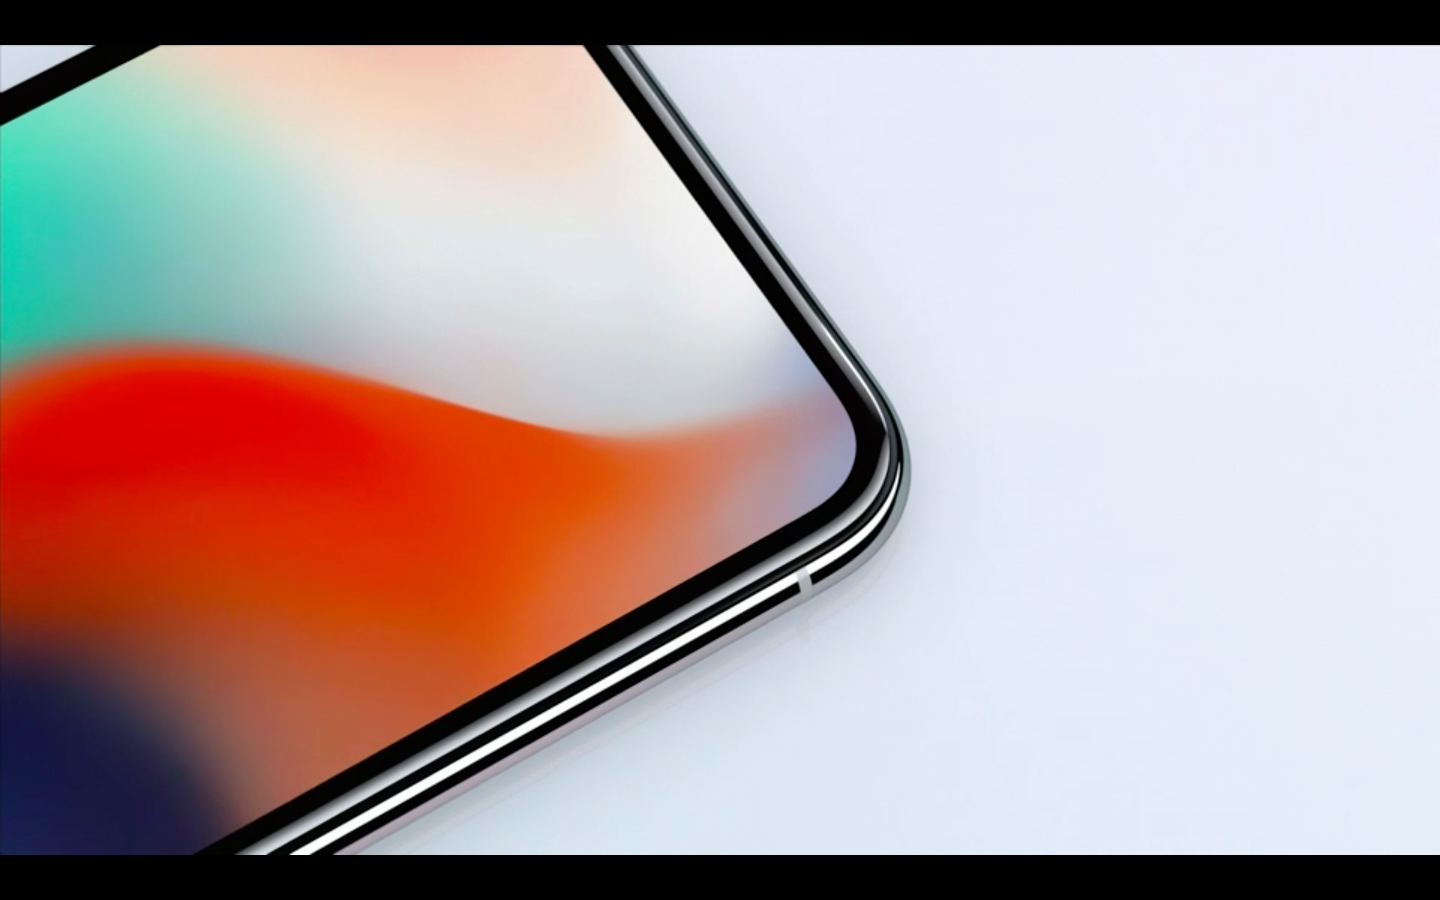 Iphone X Cupertino